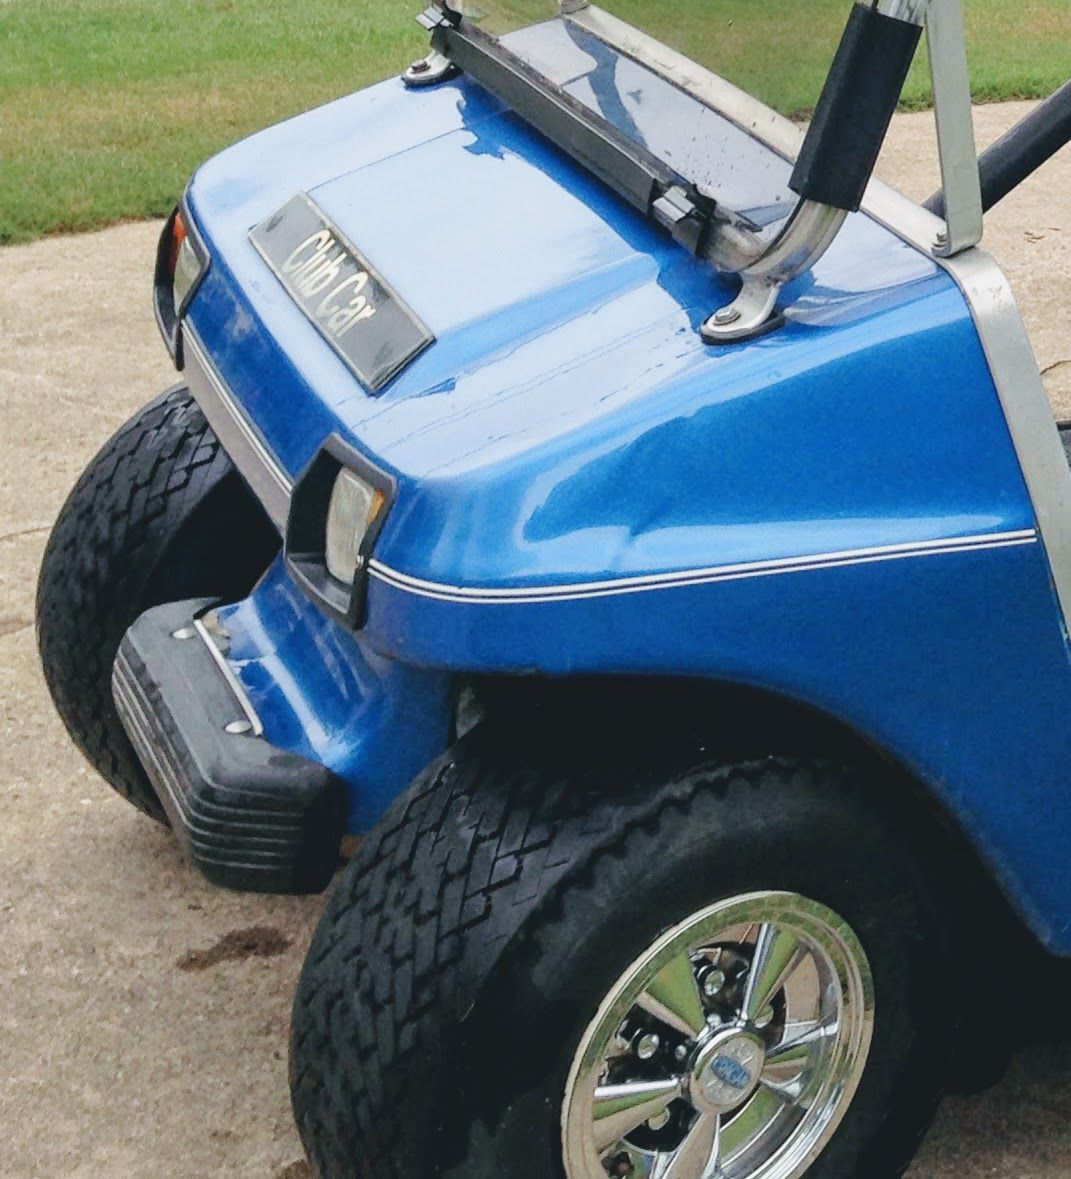 Golf cart decals customize your golf cart with decals